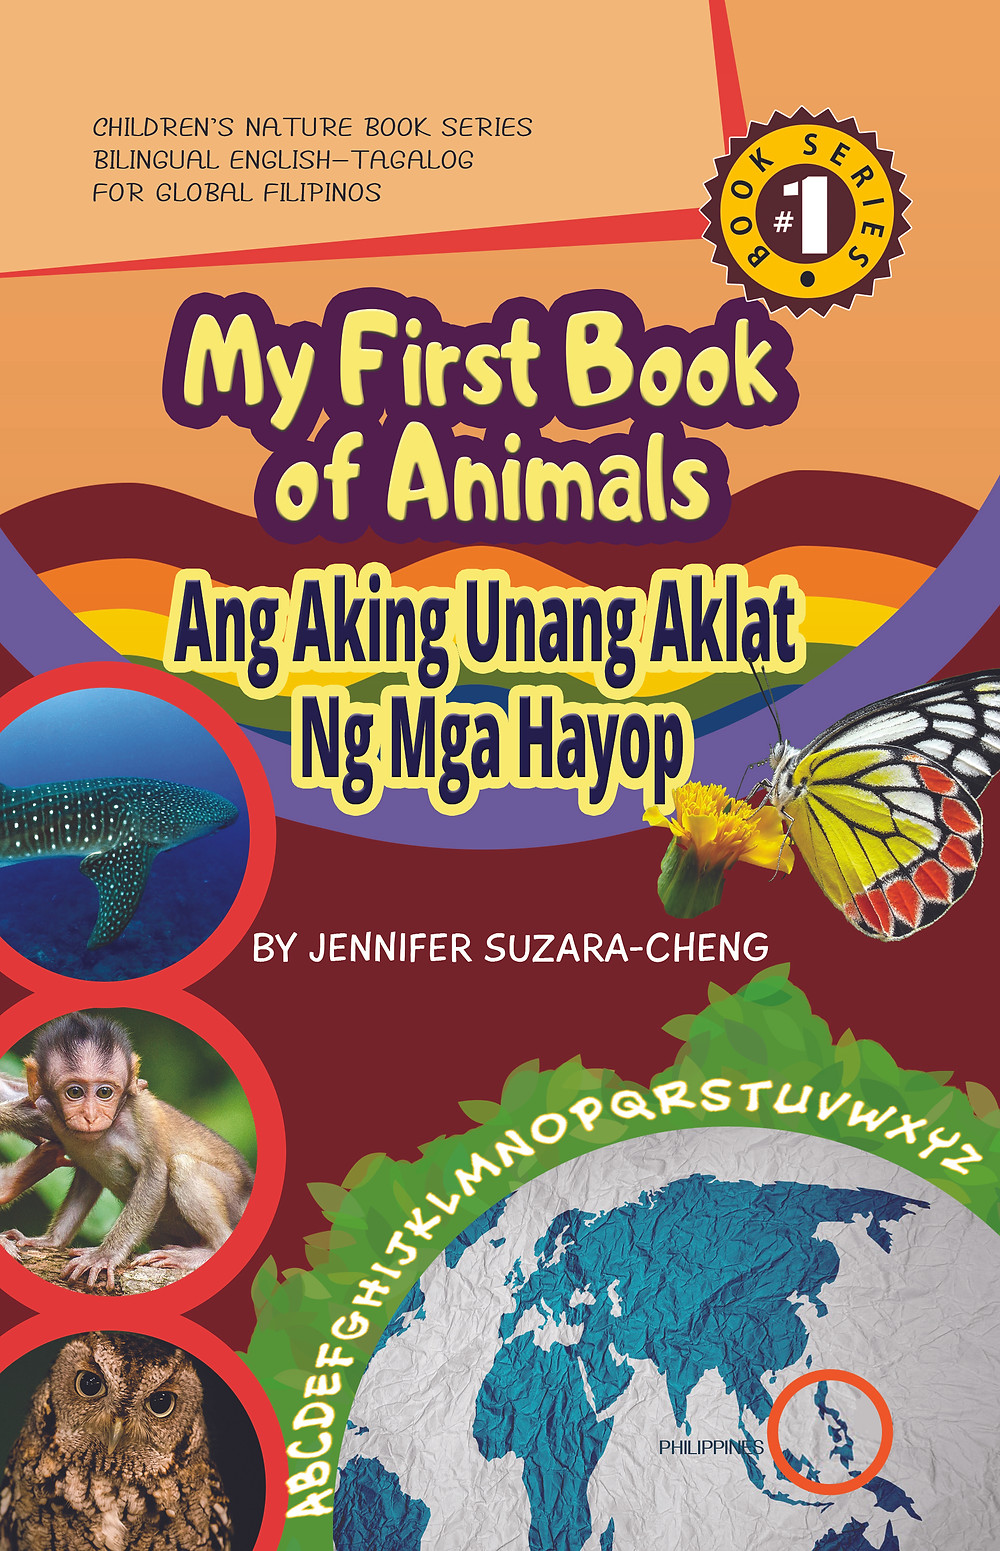 Book of the Year Awardee; My First Book of Animals